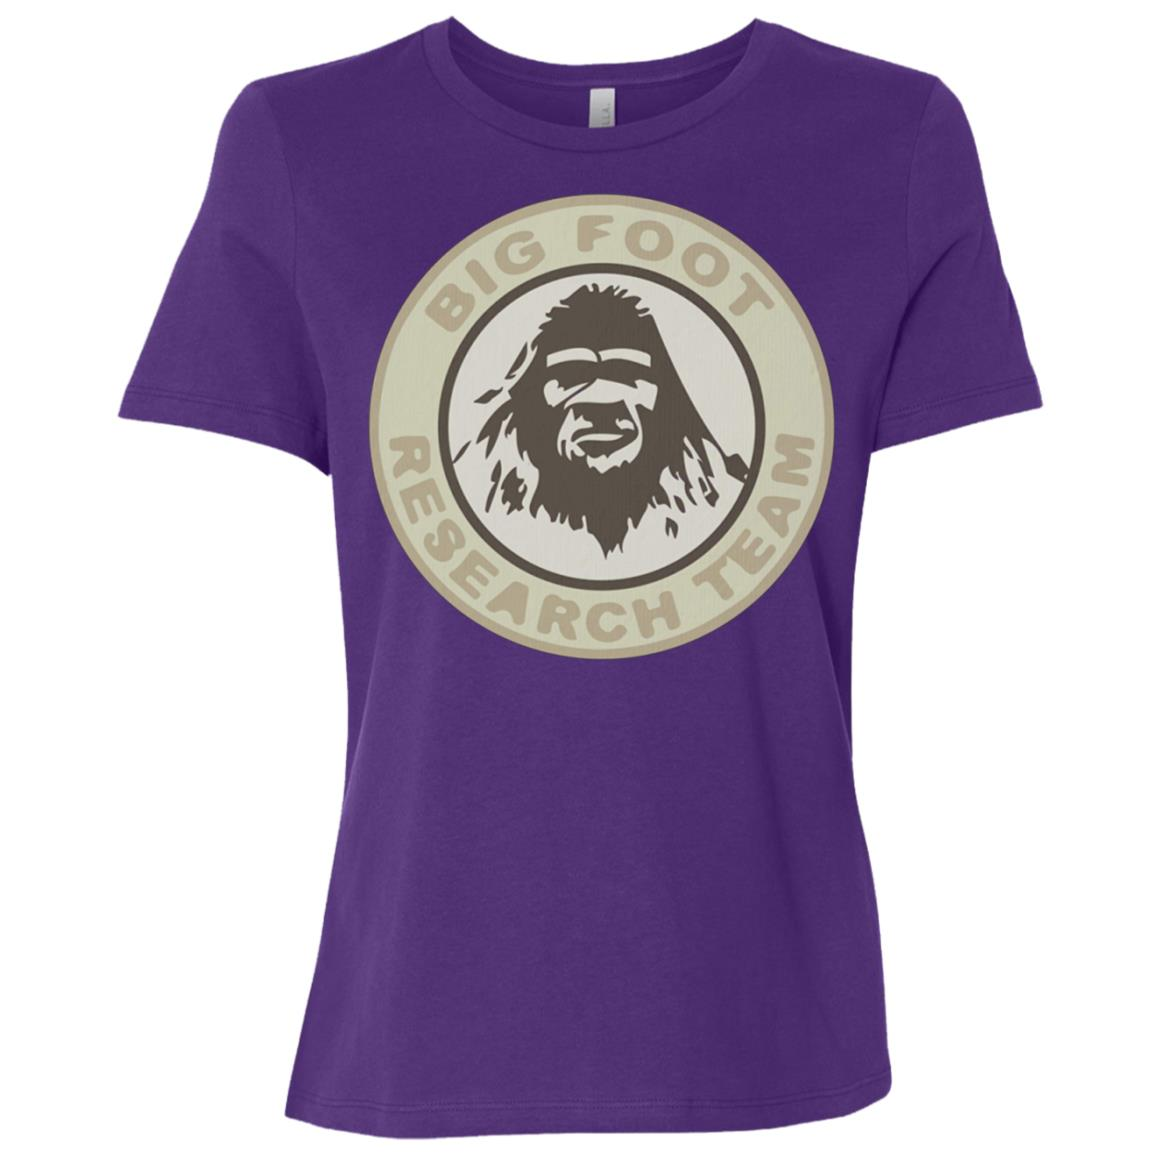 Bigfoot Yeti Research Team Sasquatch Vintage Women Short Sleeve T-Shirt